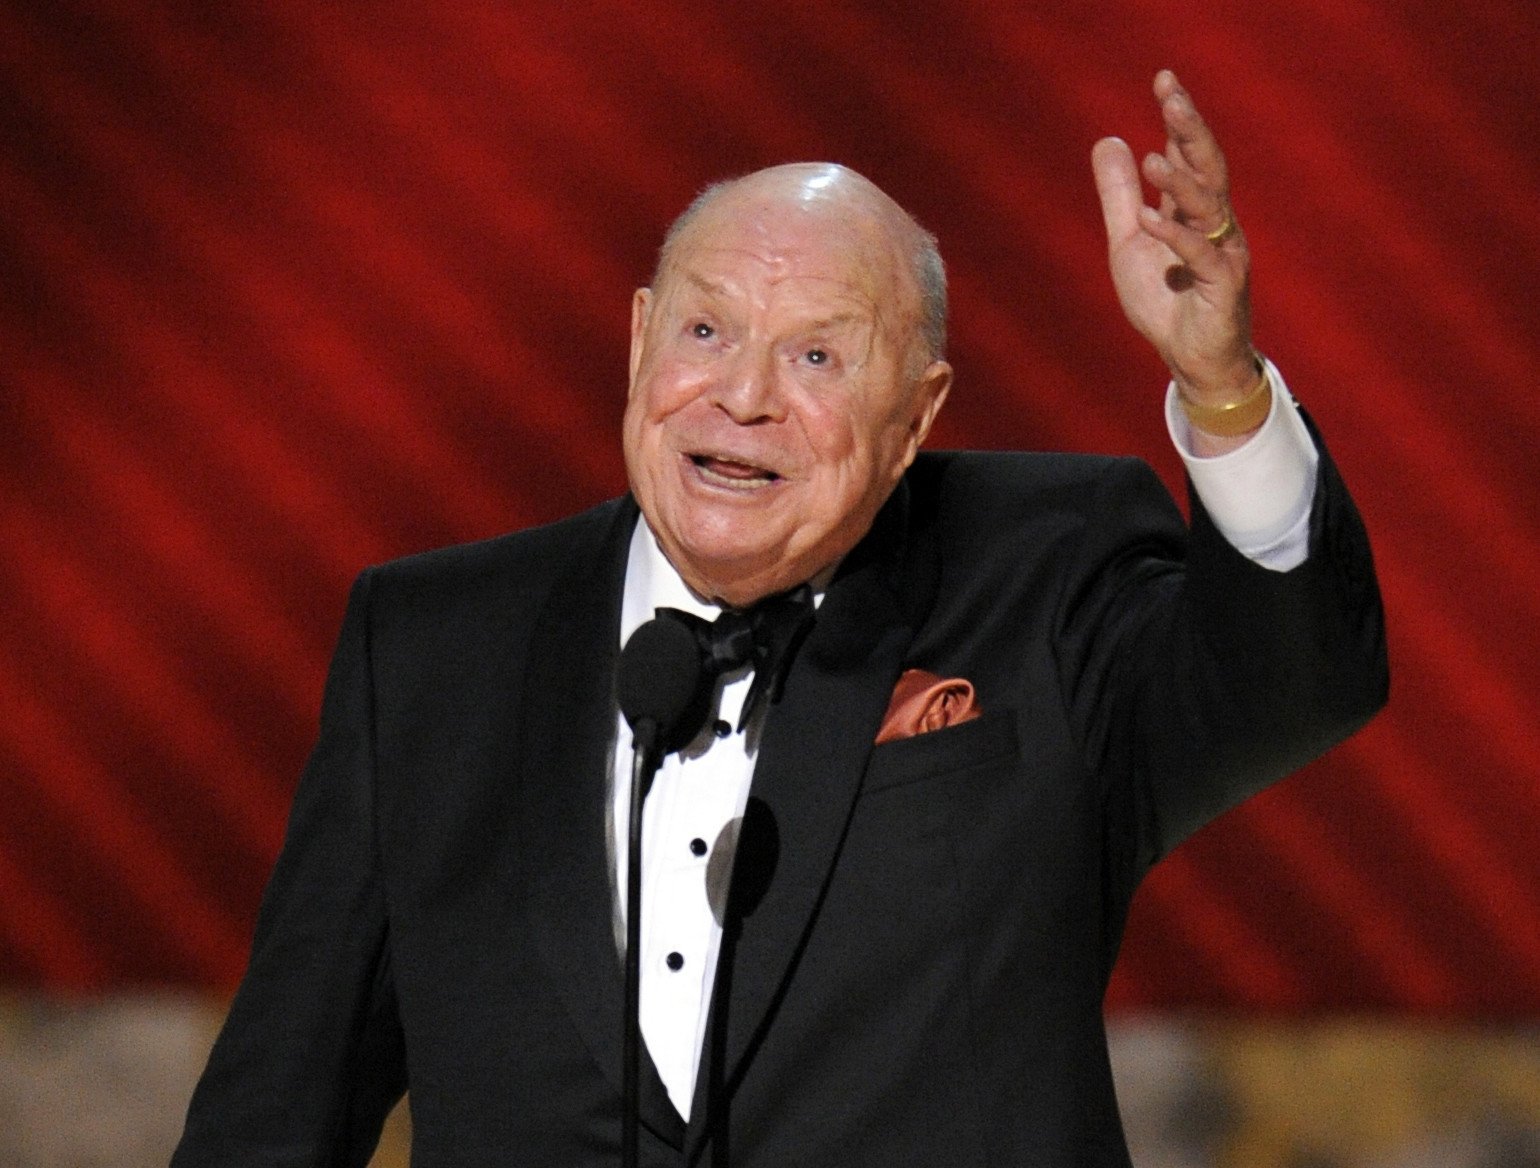 Image result for don rickles photos